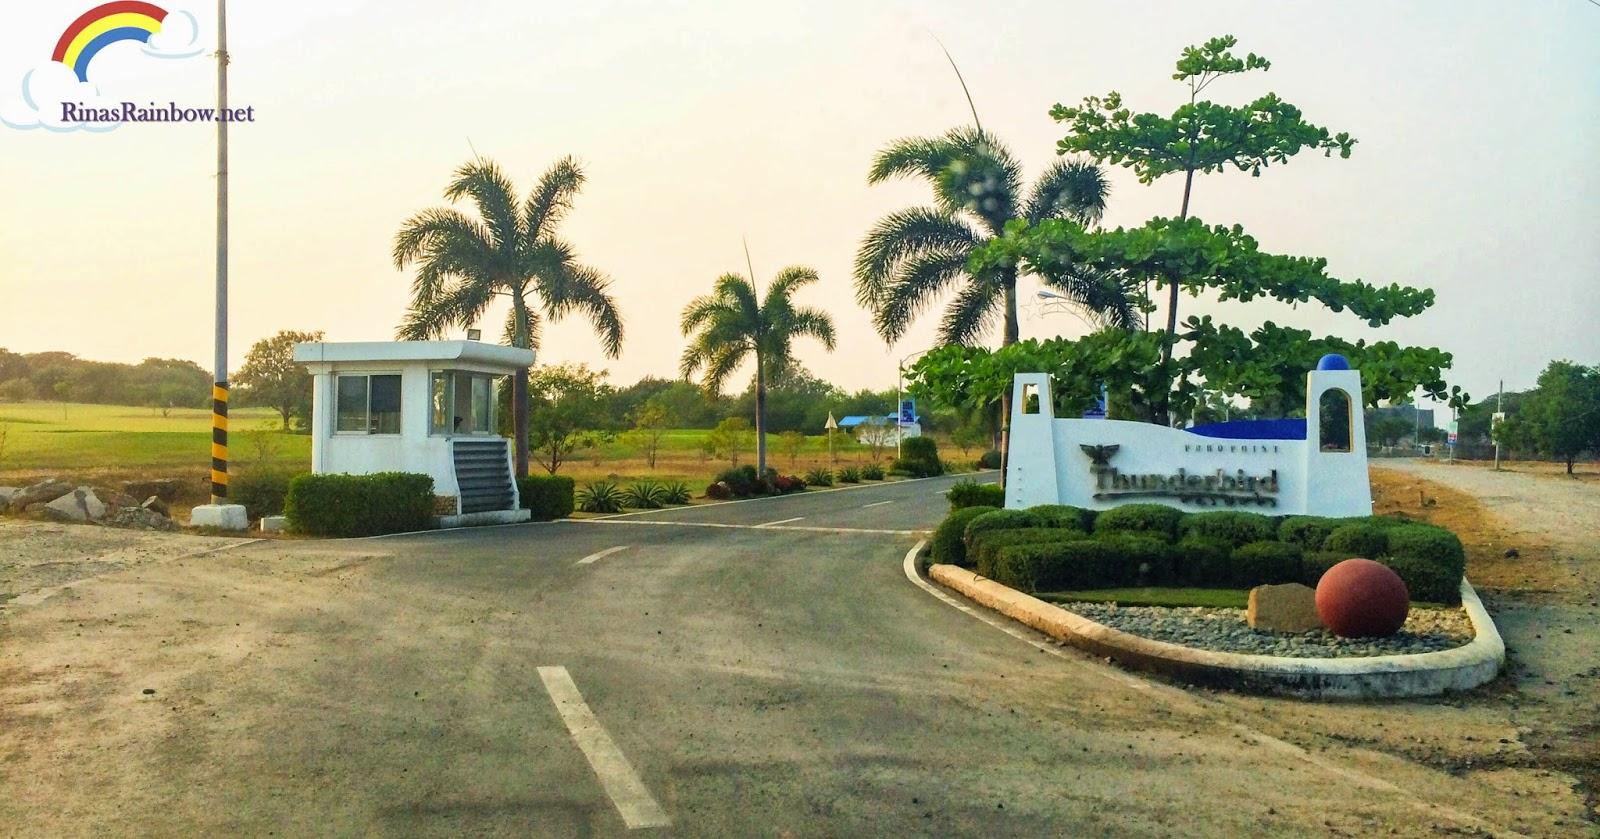 entrance to casino thunderbird resort la union